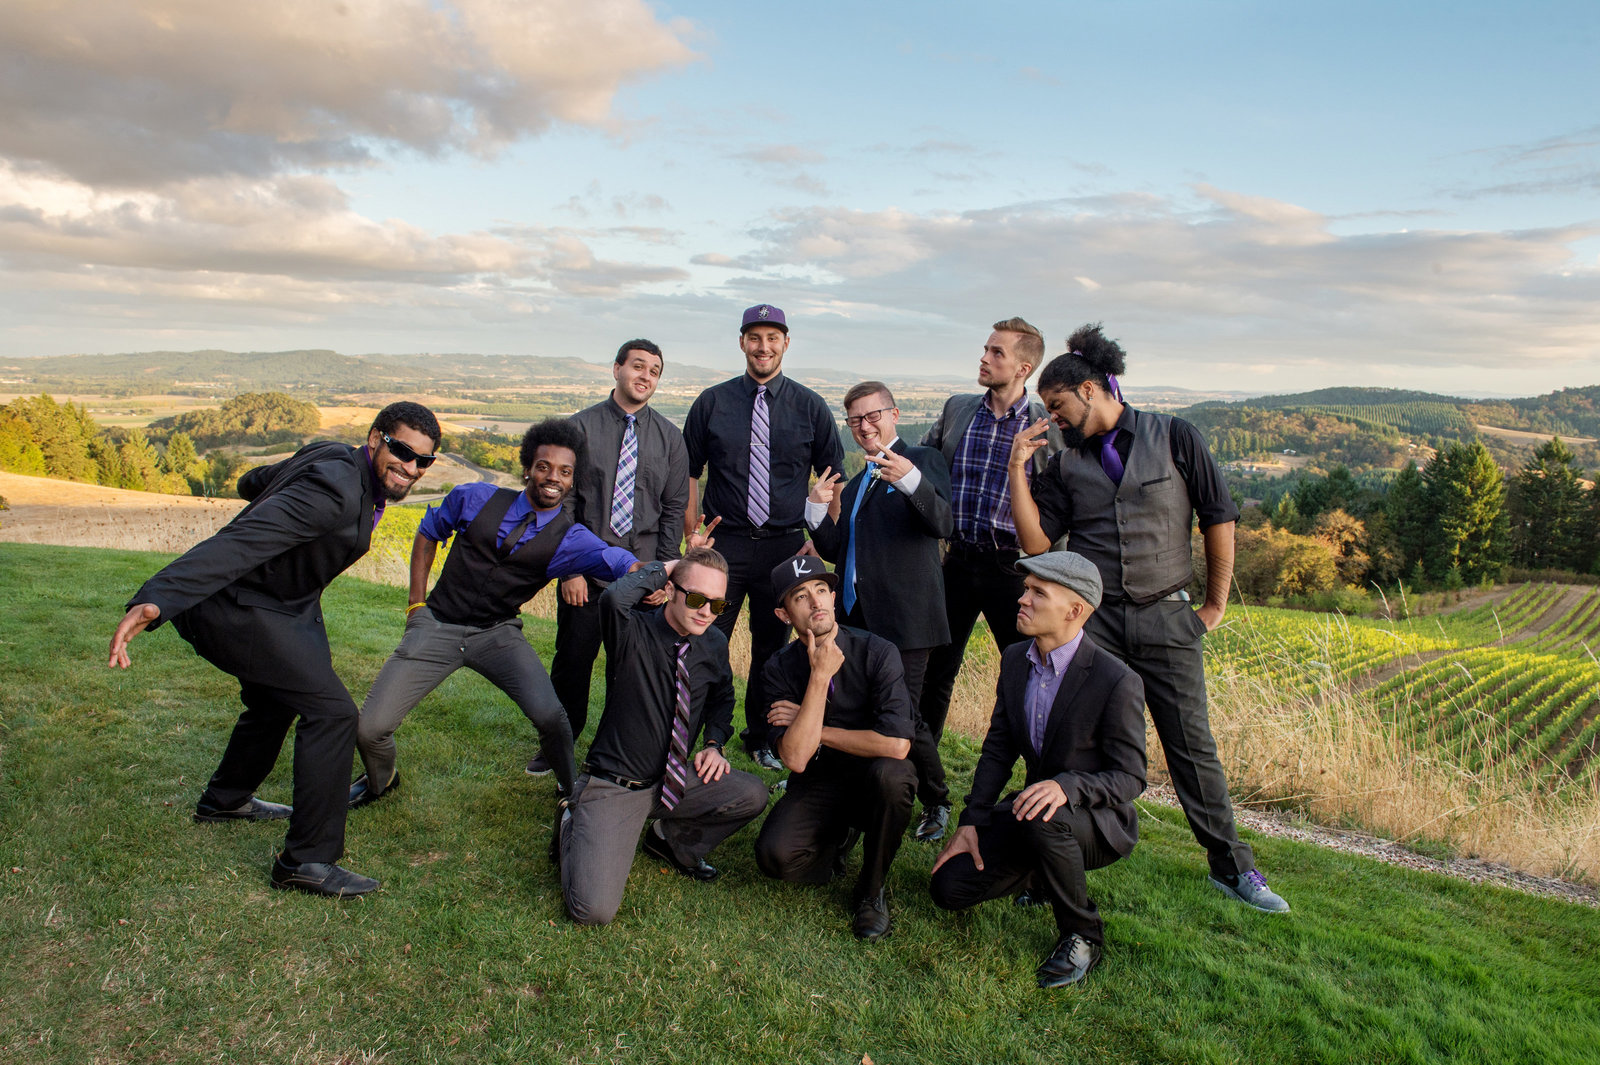 Crystal Genes Photography YOUNGBERG HILL WEDDING_150903-182231